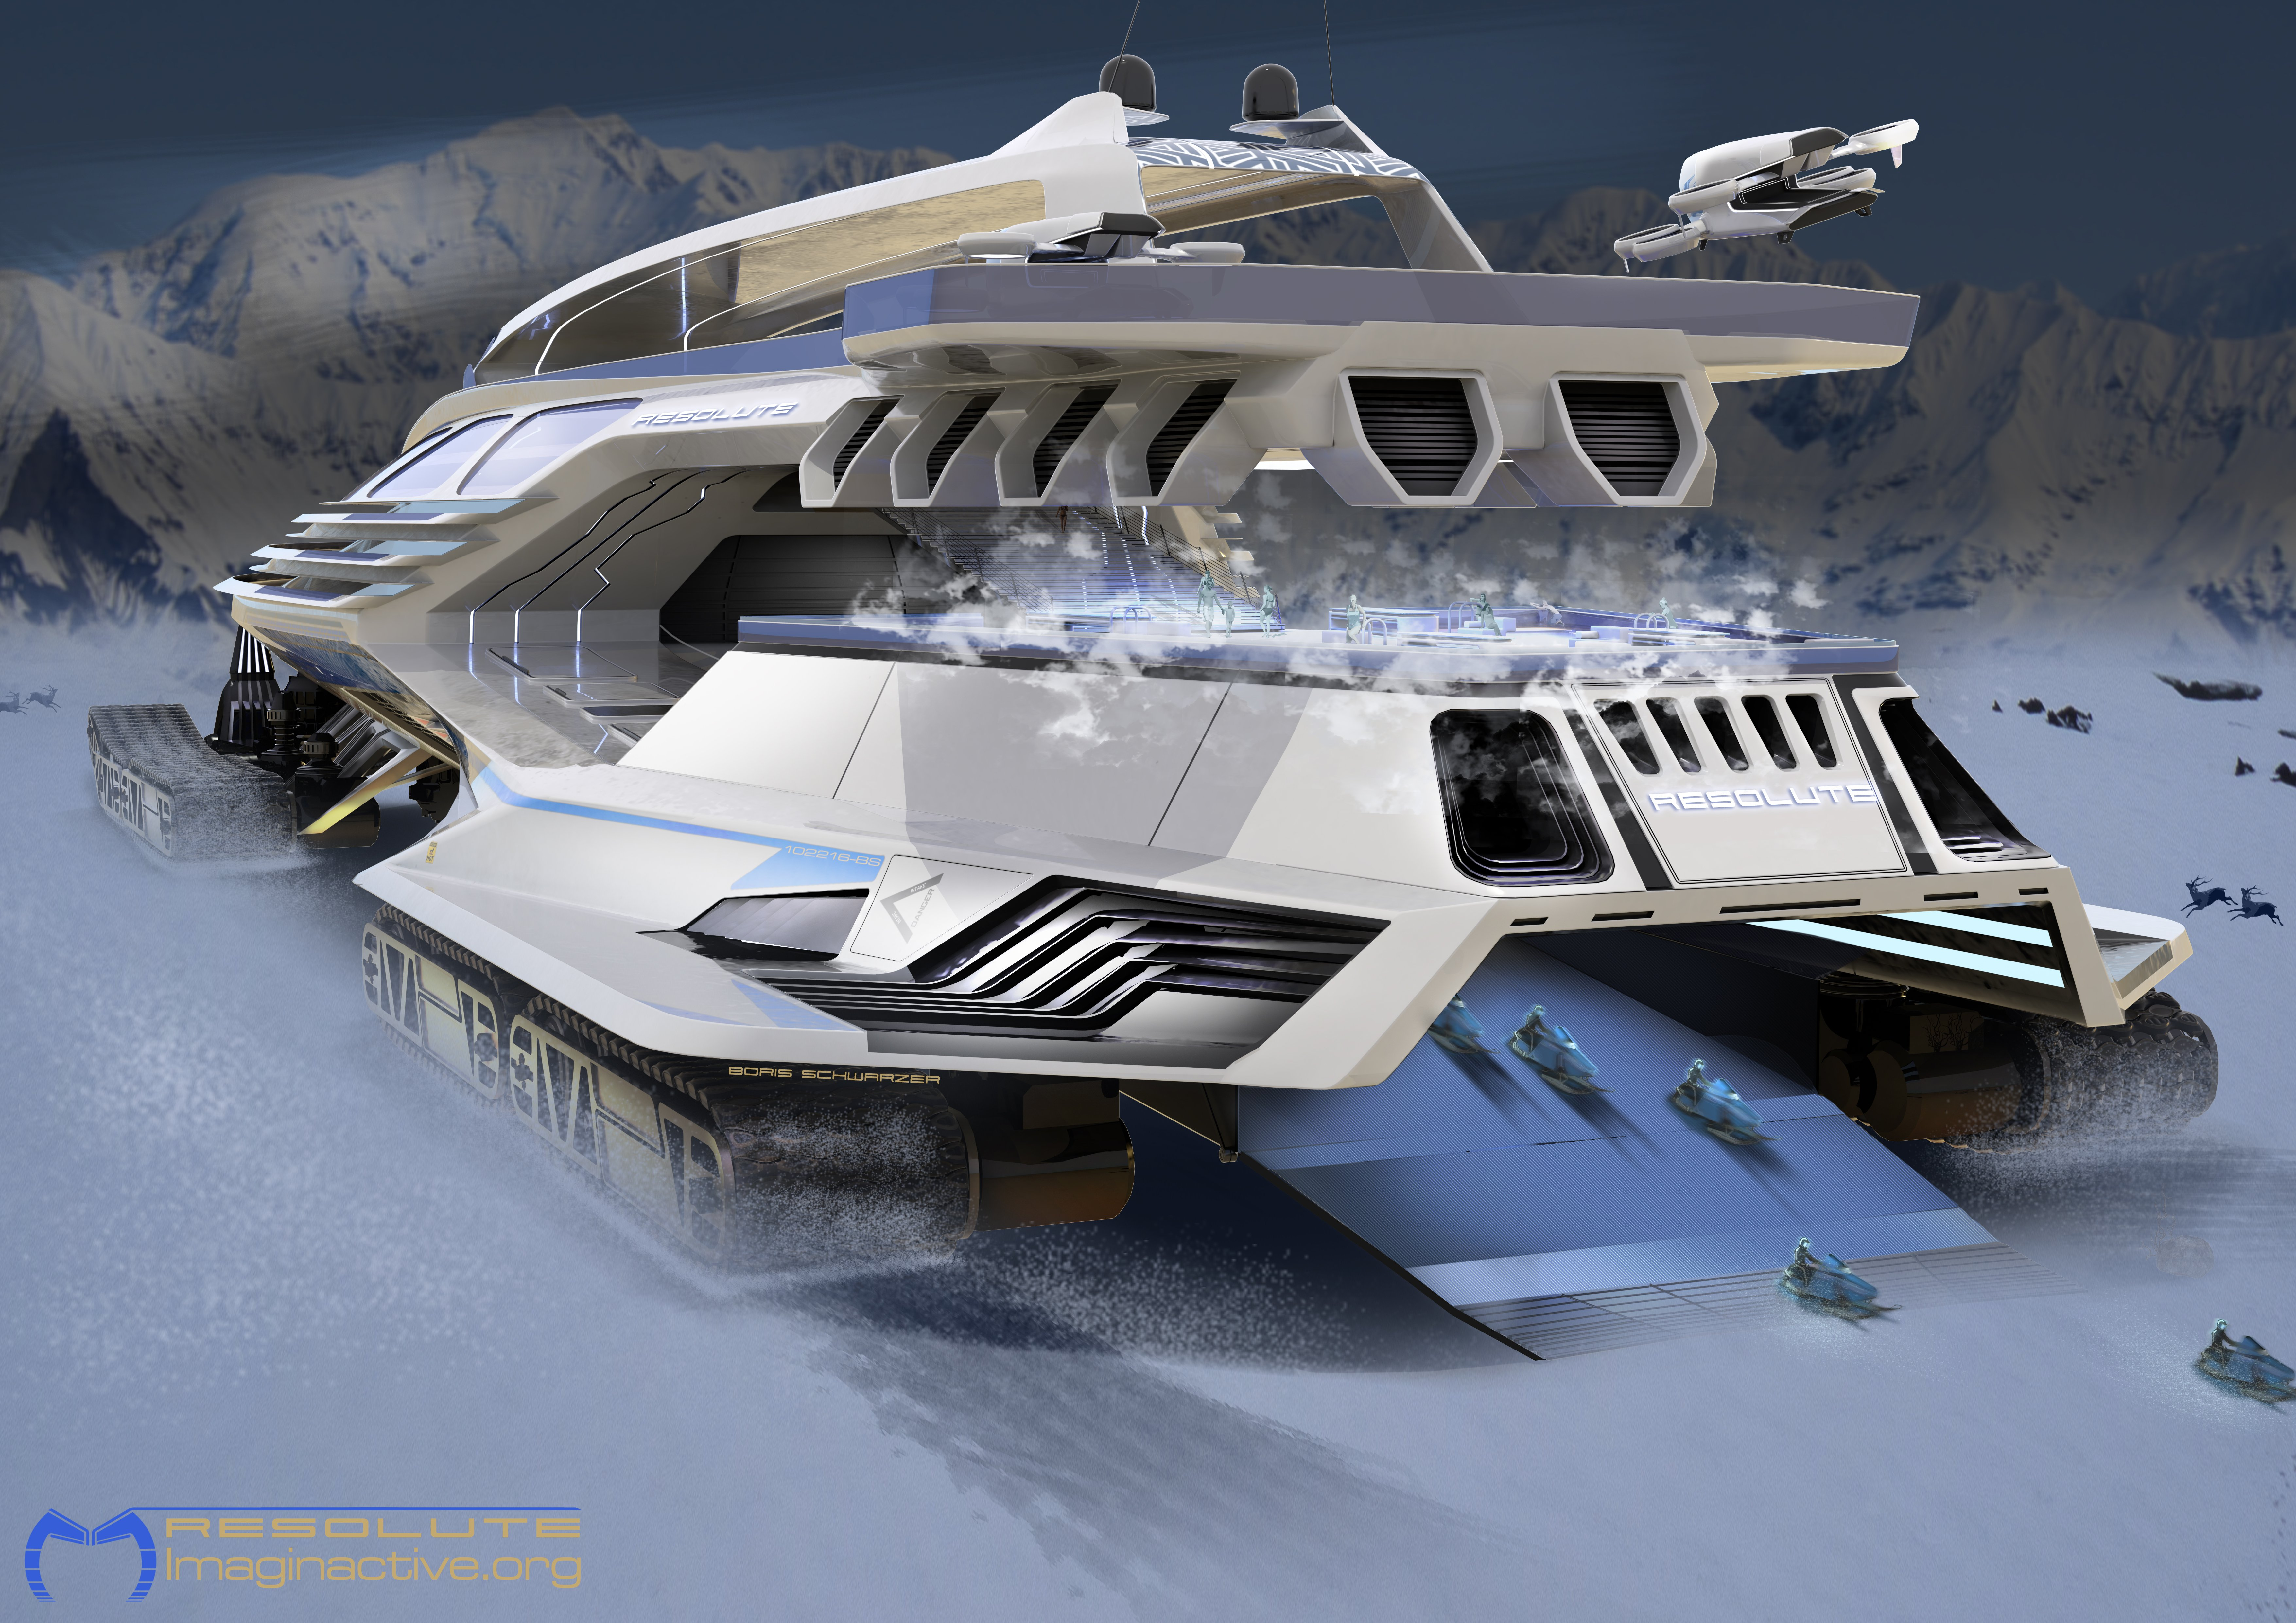 Is this massive all-terrain vehicle the future of Arctic cruising and research expeditions?